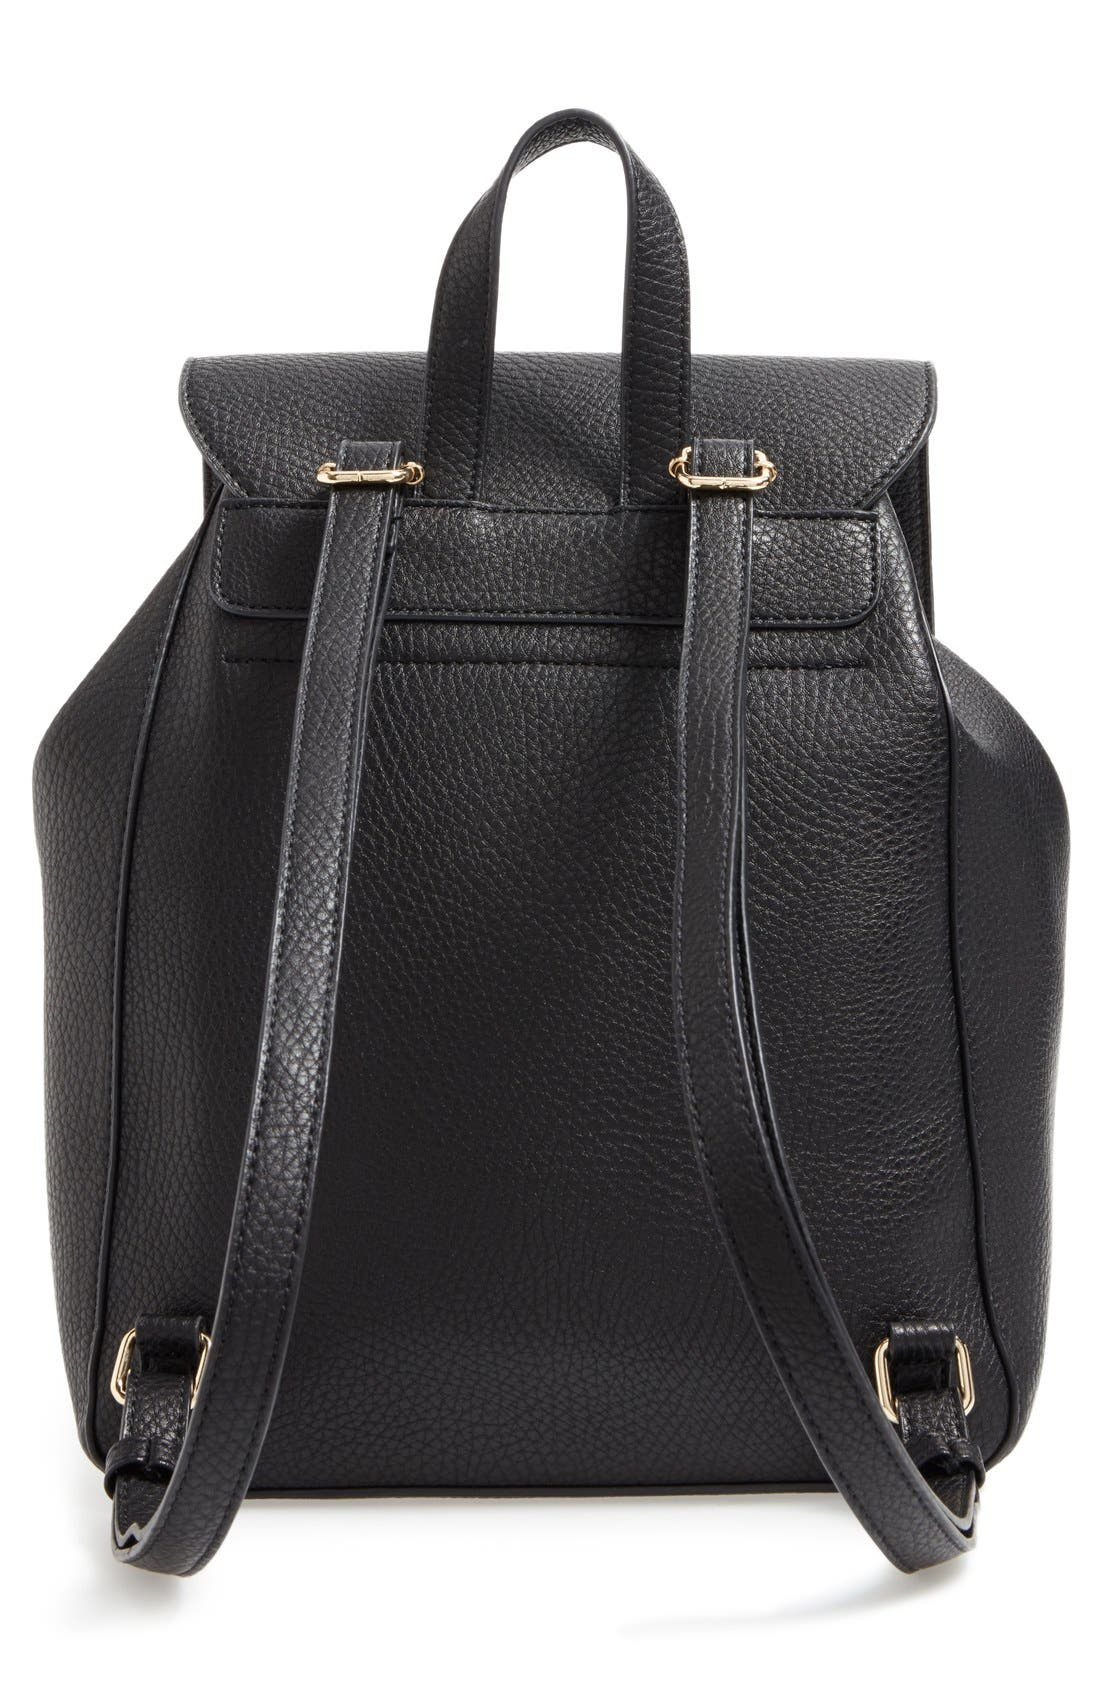 SOLE SOCIETY,                             'Iver' Faux Leather Drawstring Backpack,                             Alternate thumbnail 4, color,                             001